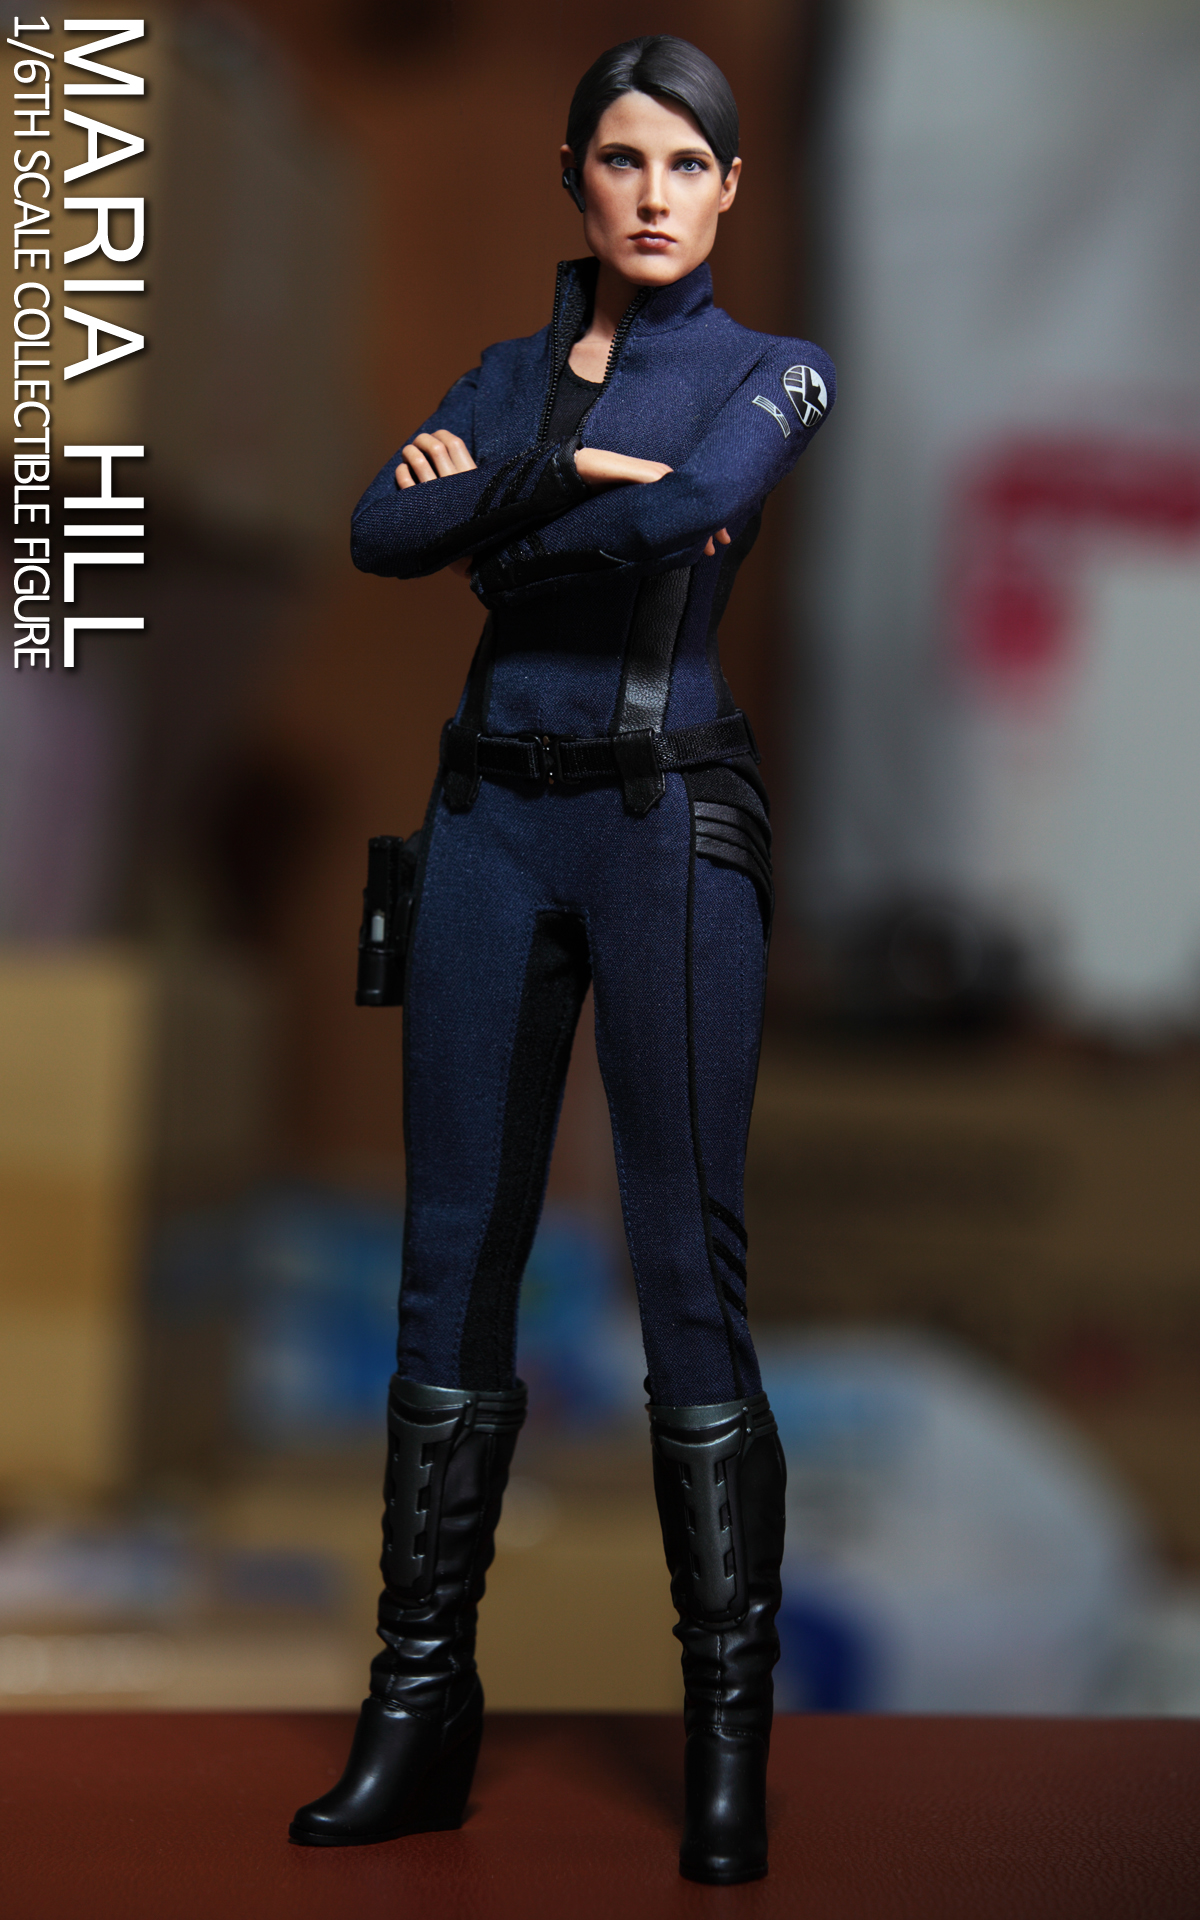 hottoys-avengers-age-of-ultron-maria-hill-picture02